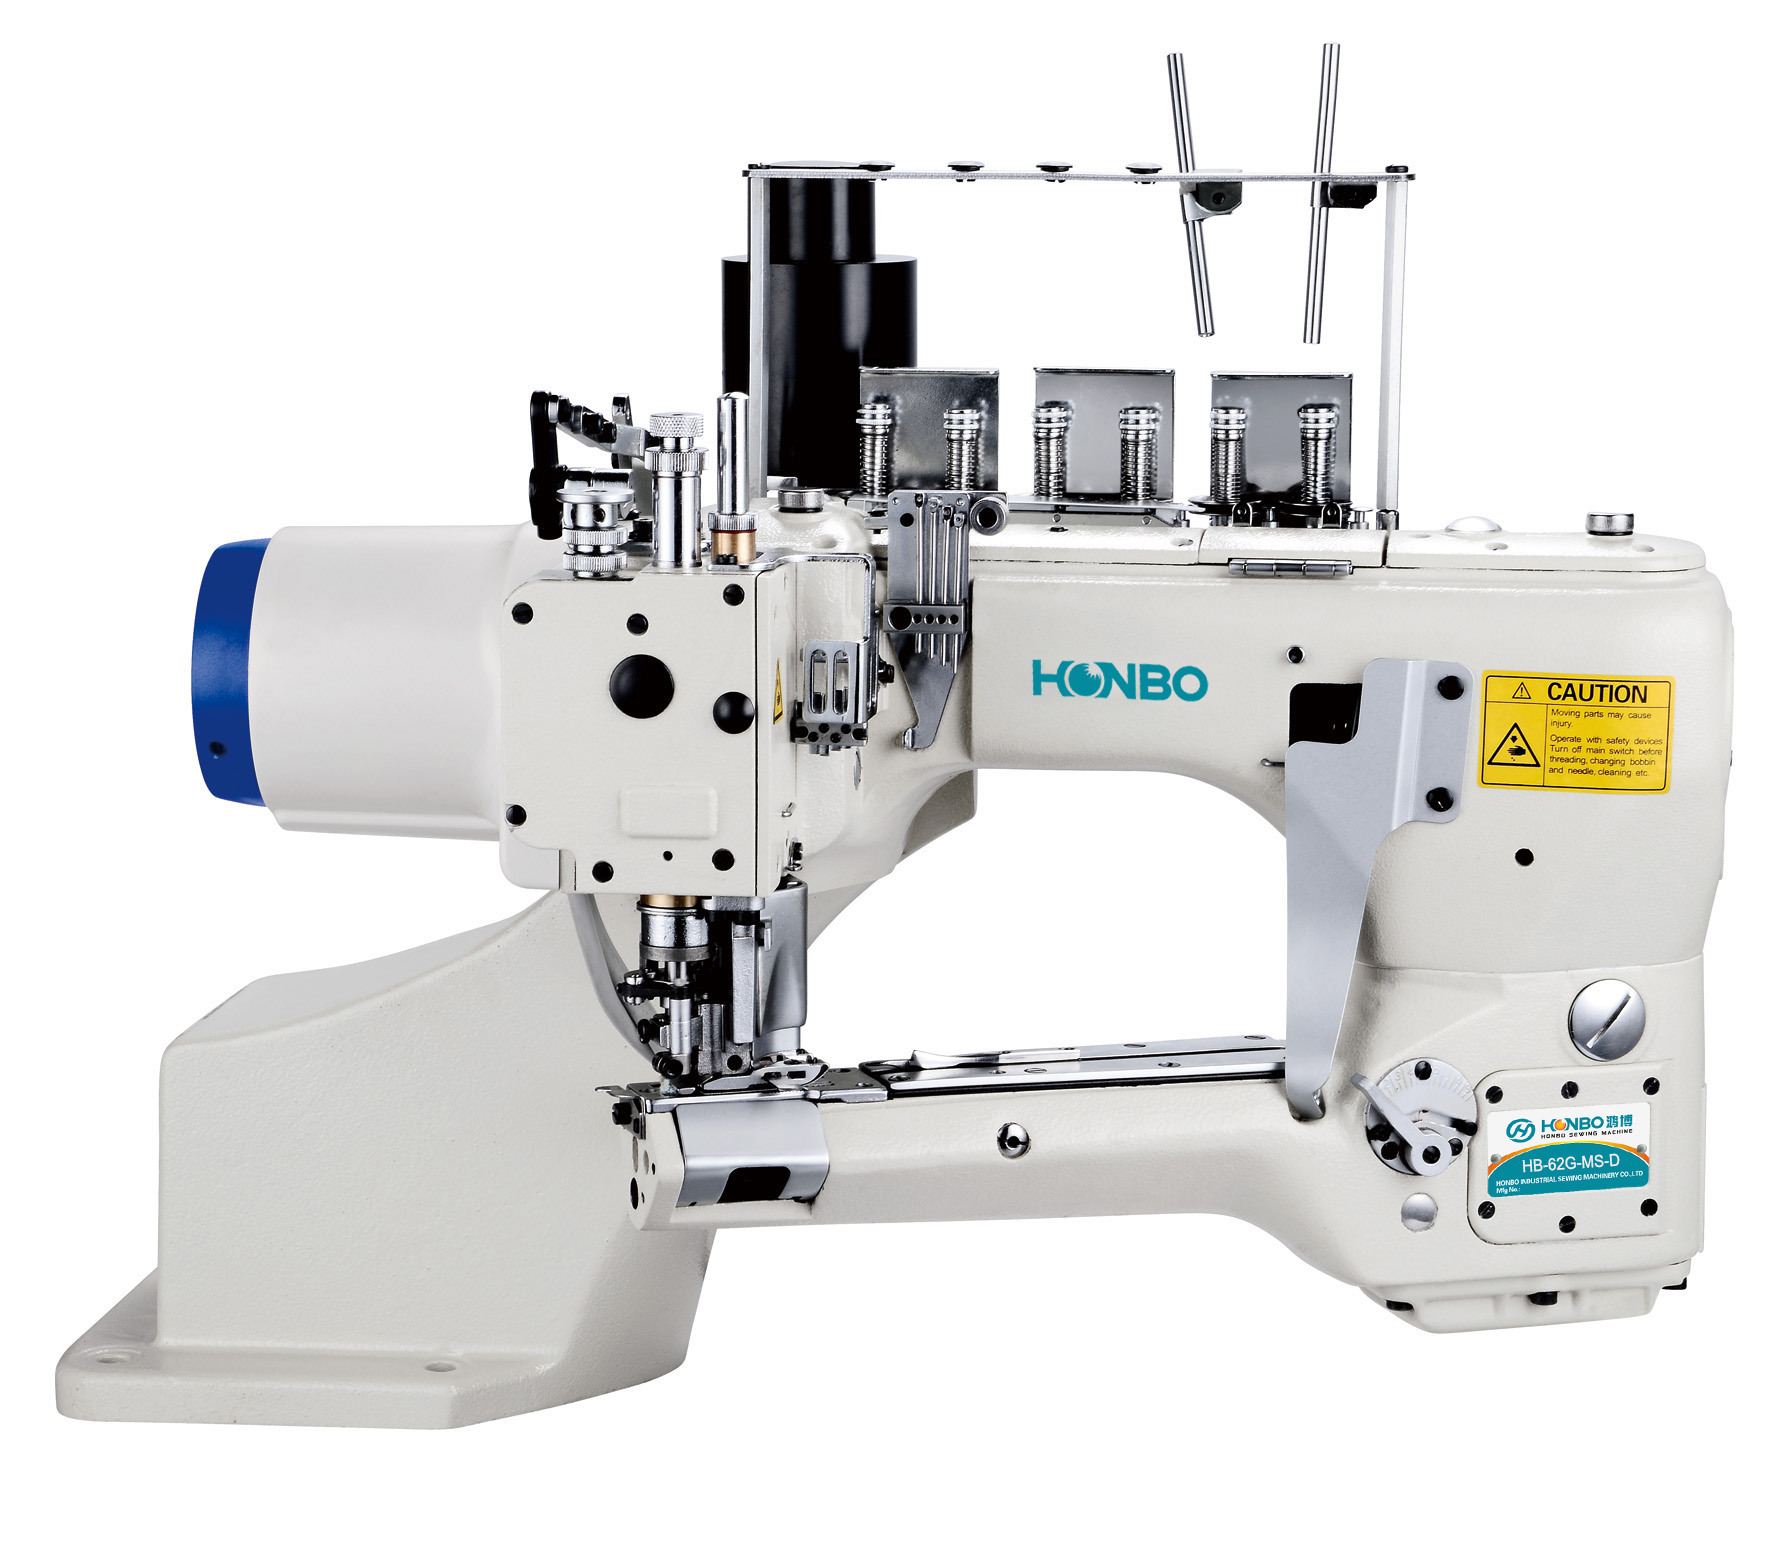 HB-62G-MS-D new style direct-drive feed-off-the-arm 6 thread auto trimmer underwear cylinder bed interlock sewing machine